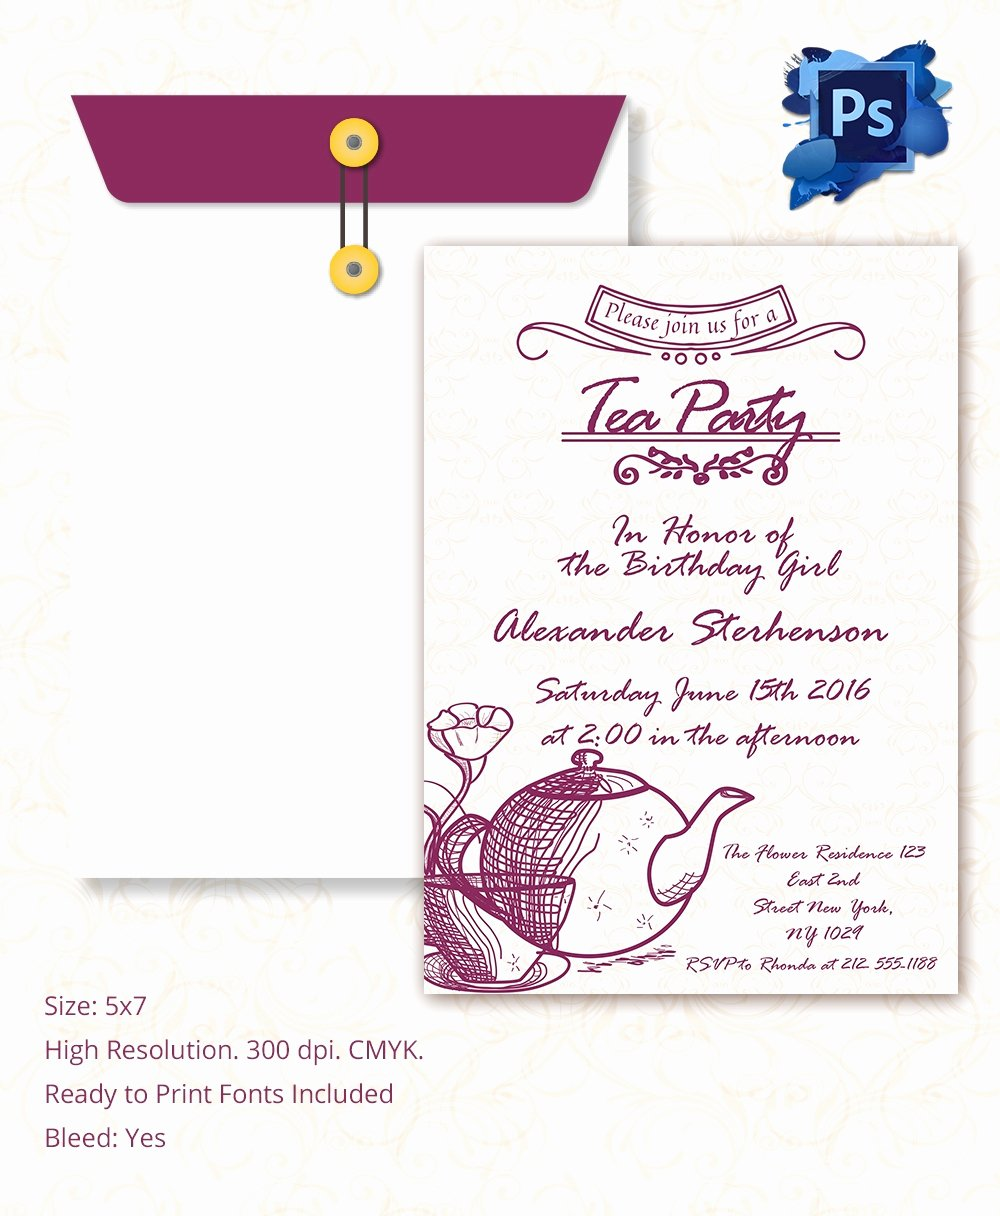 Reception Invitation Template Free Best Of 22 Tea Party Invitation Templates